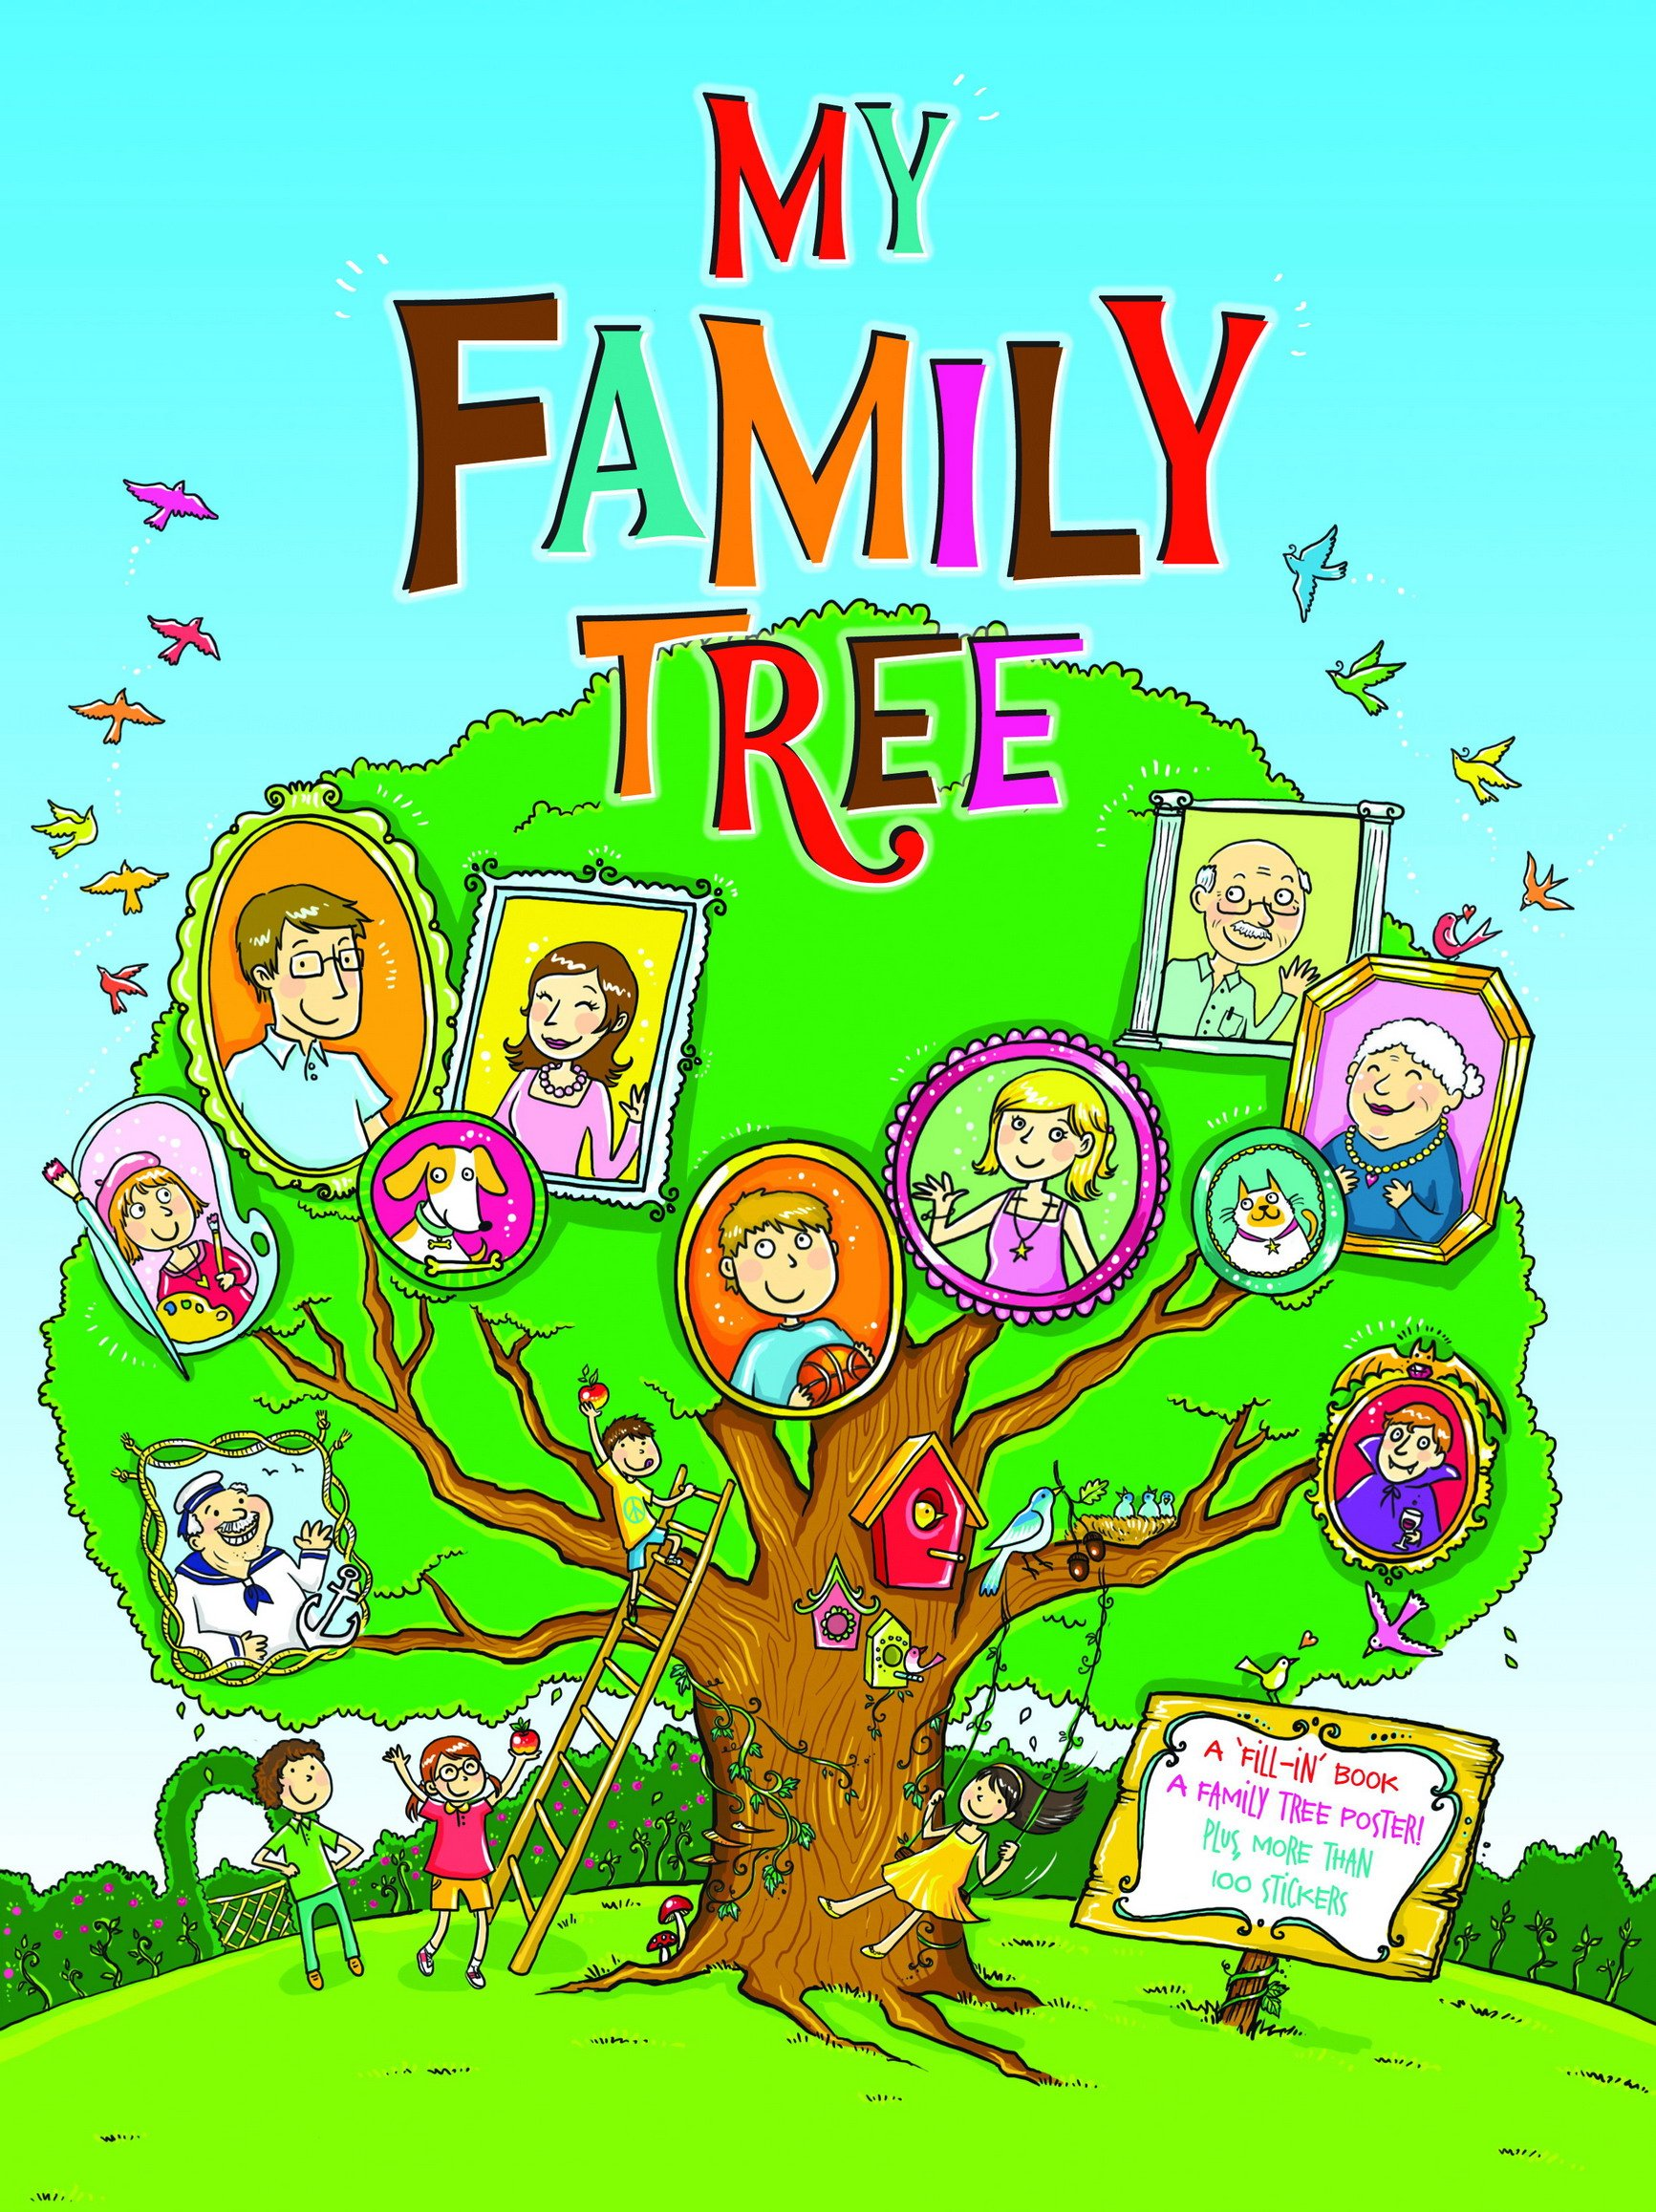 my family tree software free download for keeping family ancestry